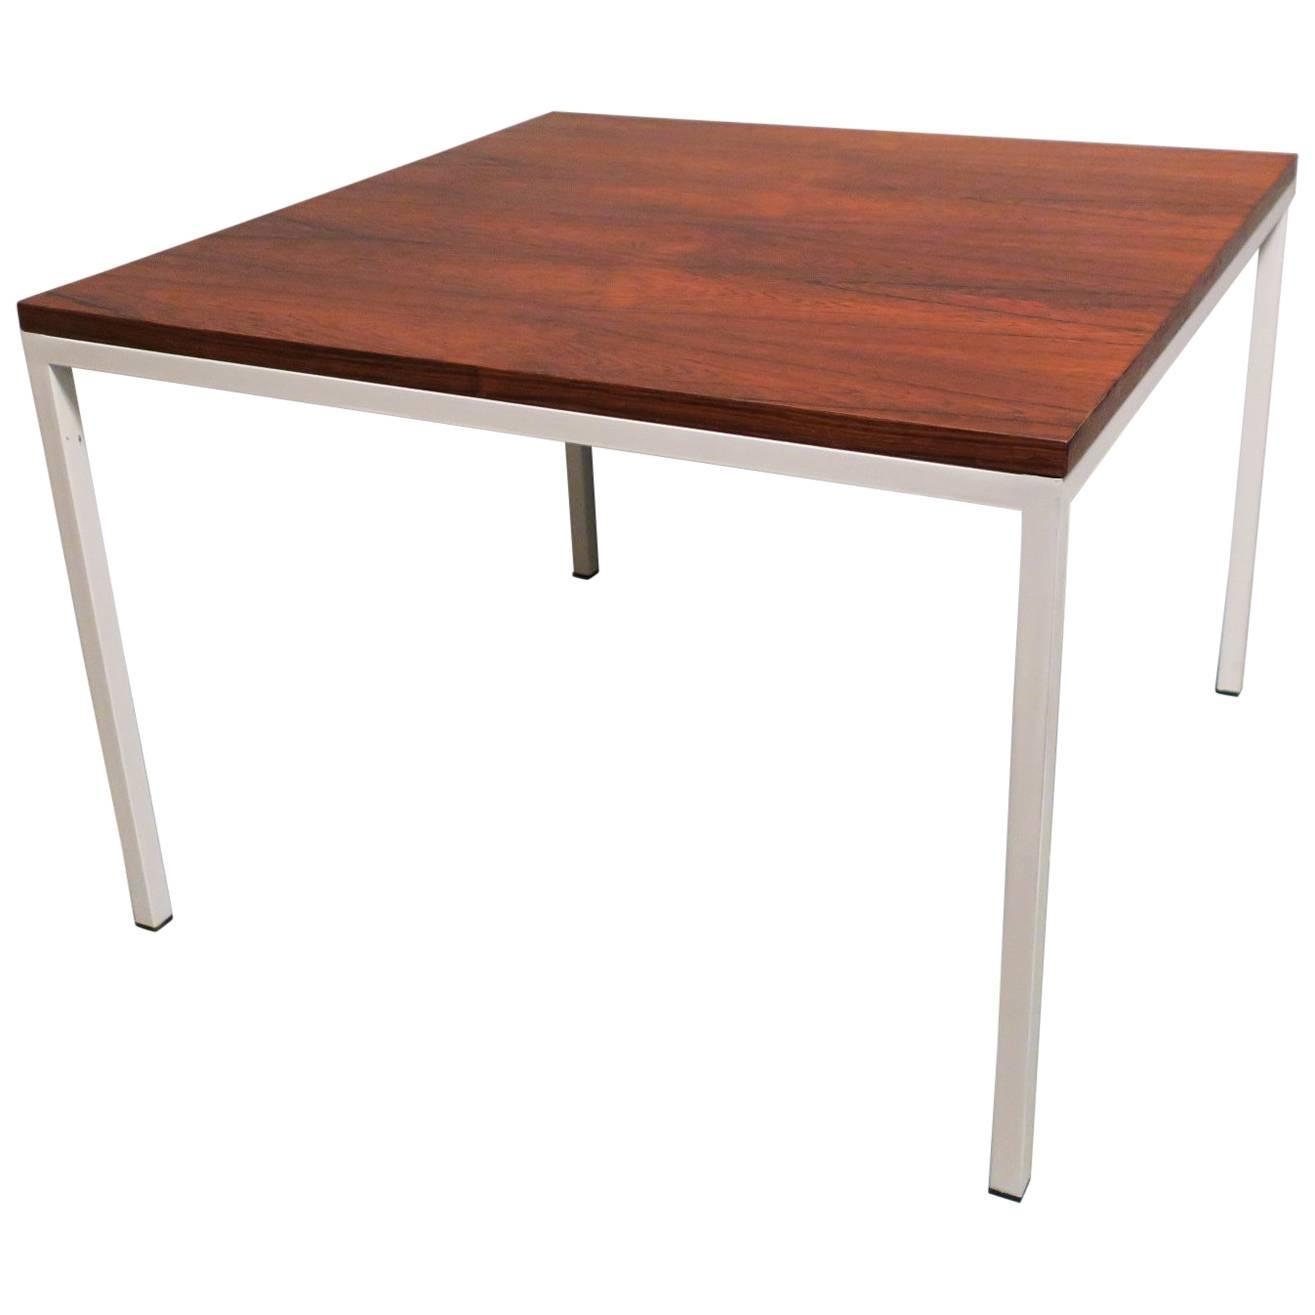 Modernist Rosewood Square Coffee Table With Metal Legs For Sale At 1stdibs: metal square coffee table